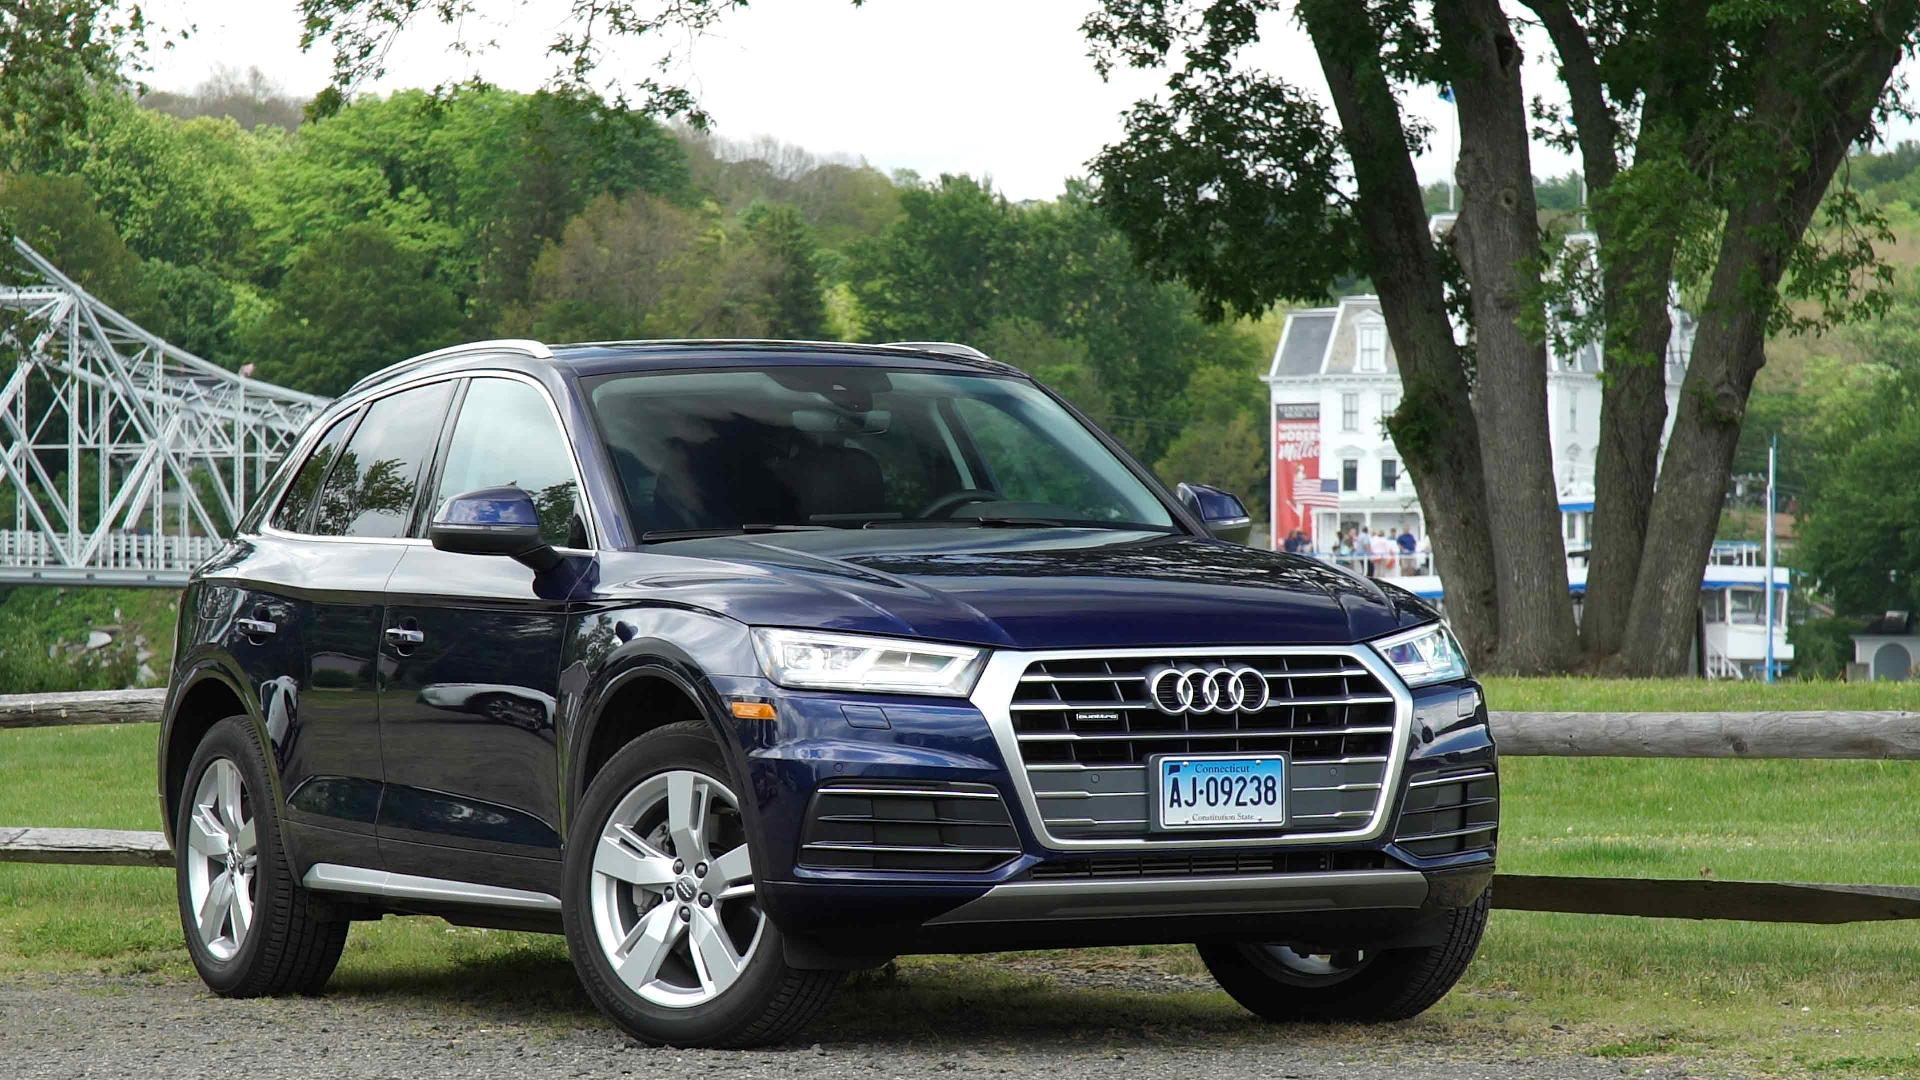 2018 Audi Q5 Reviews Ratings Prices Consumer Reports